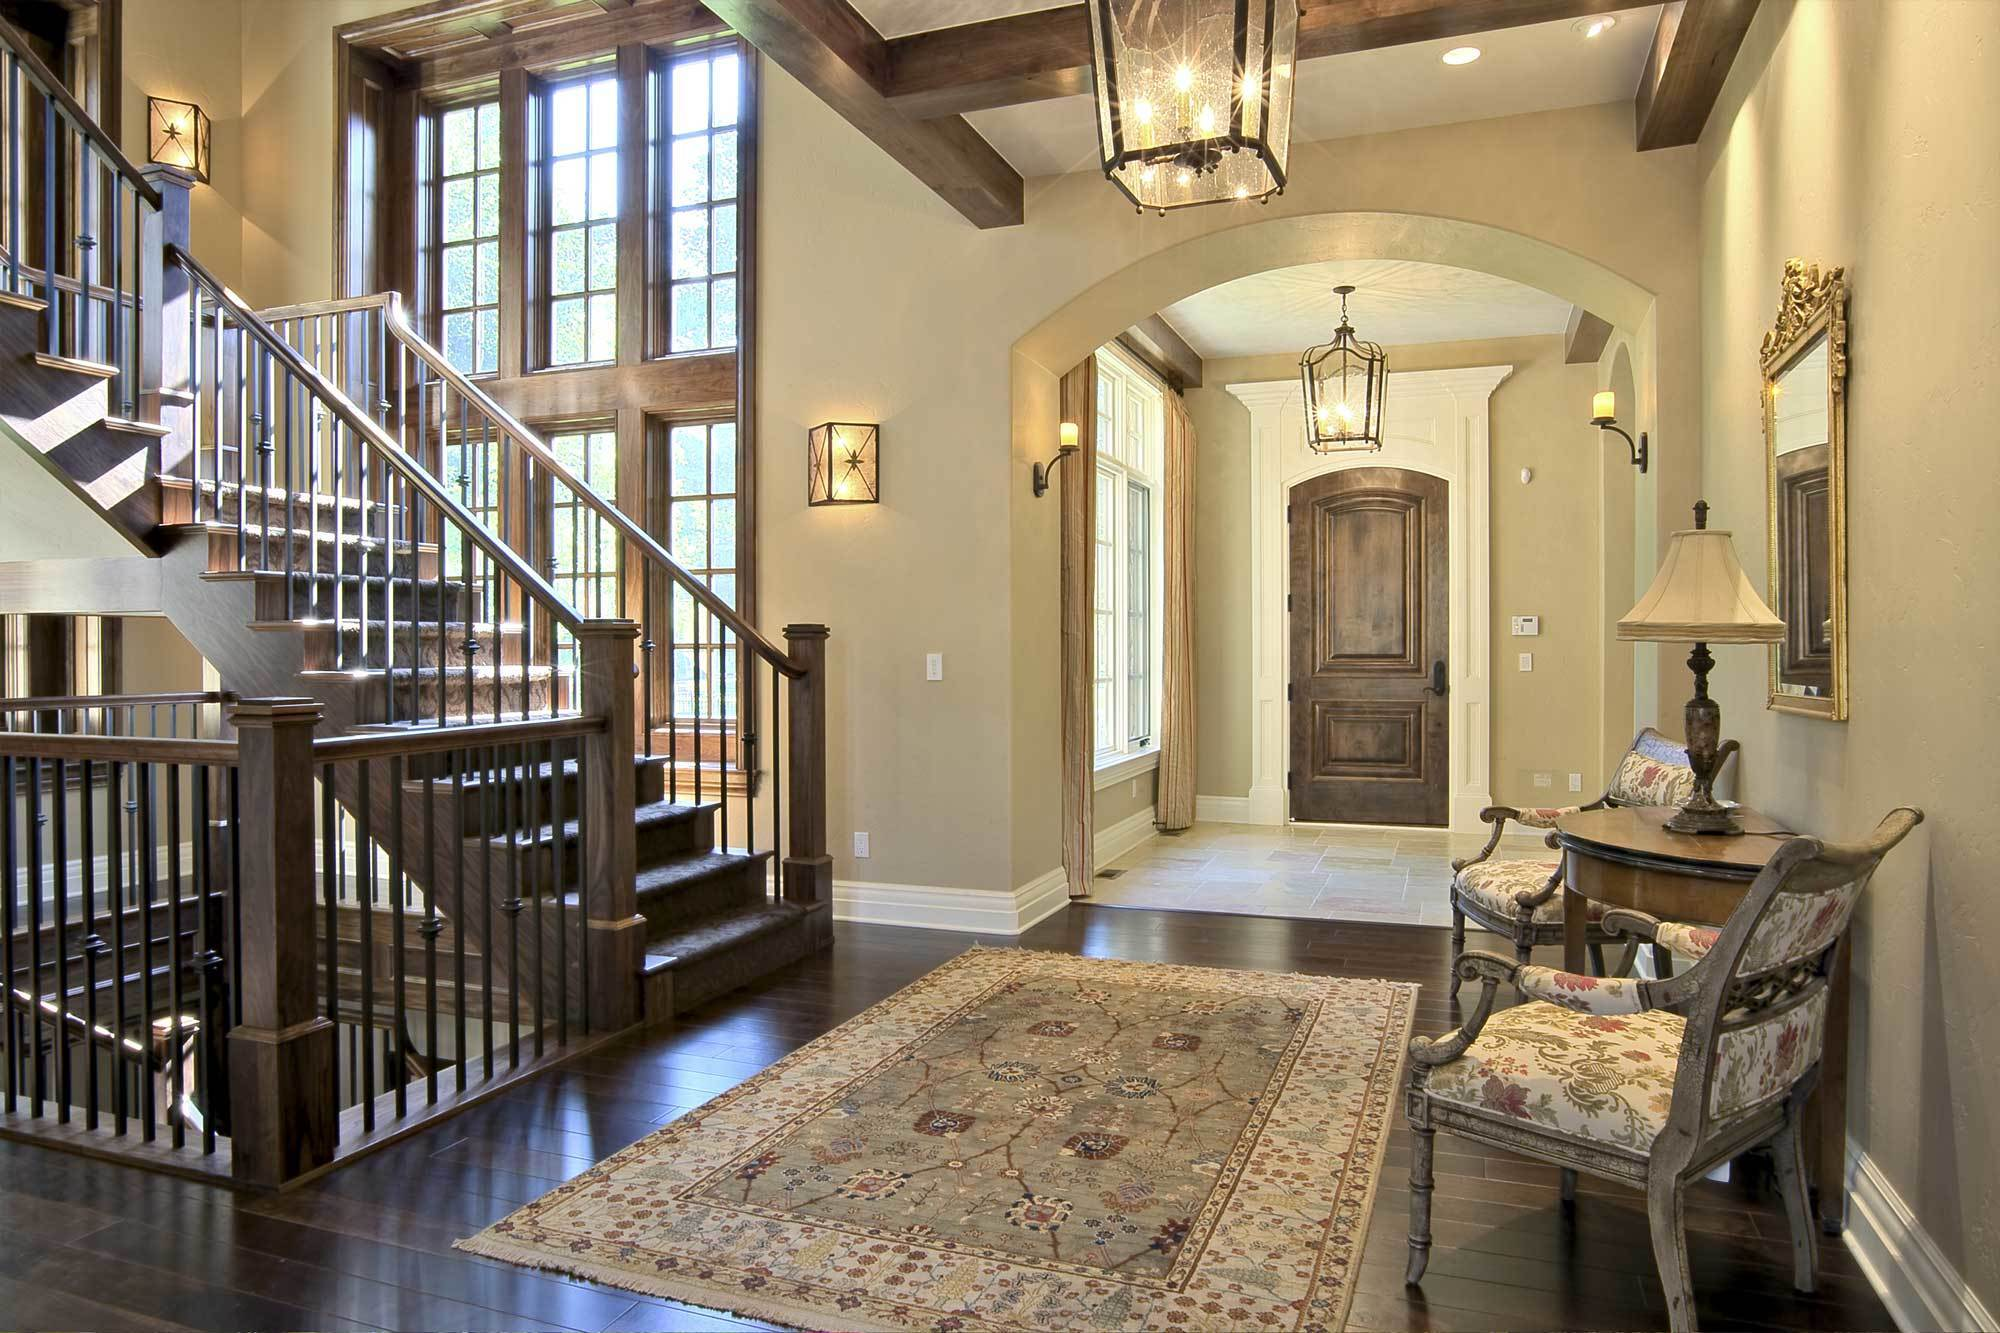 Greystone Subdivision homes for sale hoover Alabama Birmingham Real Estate Entryway image